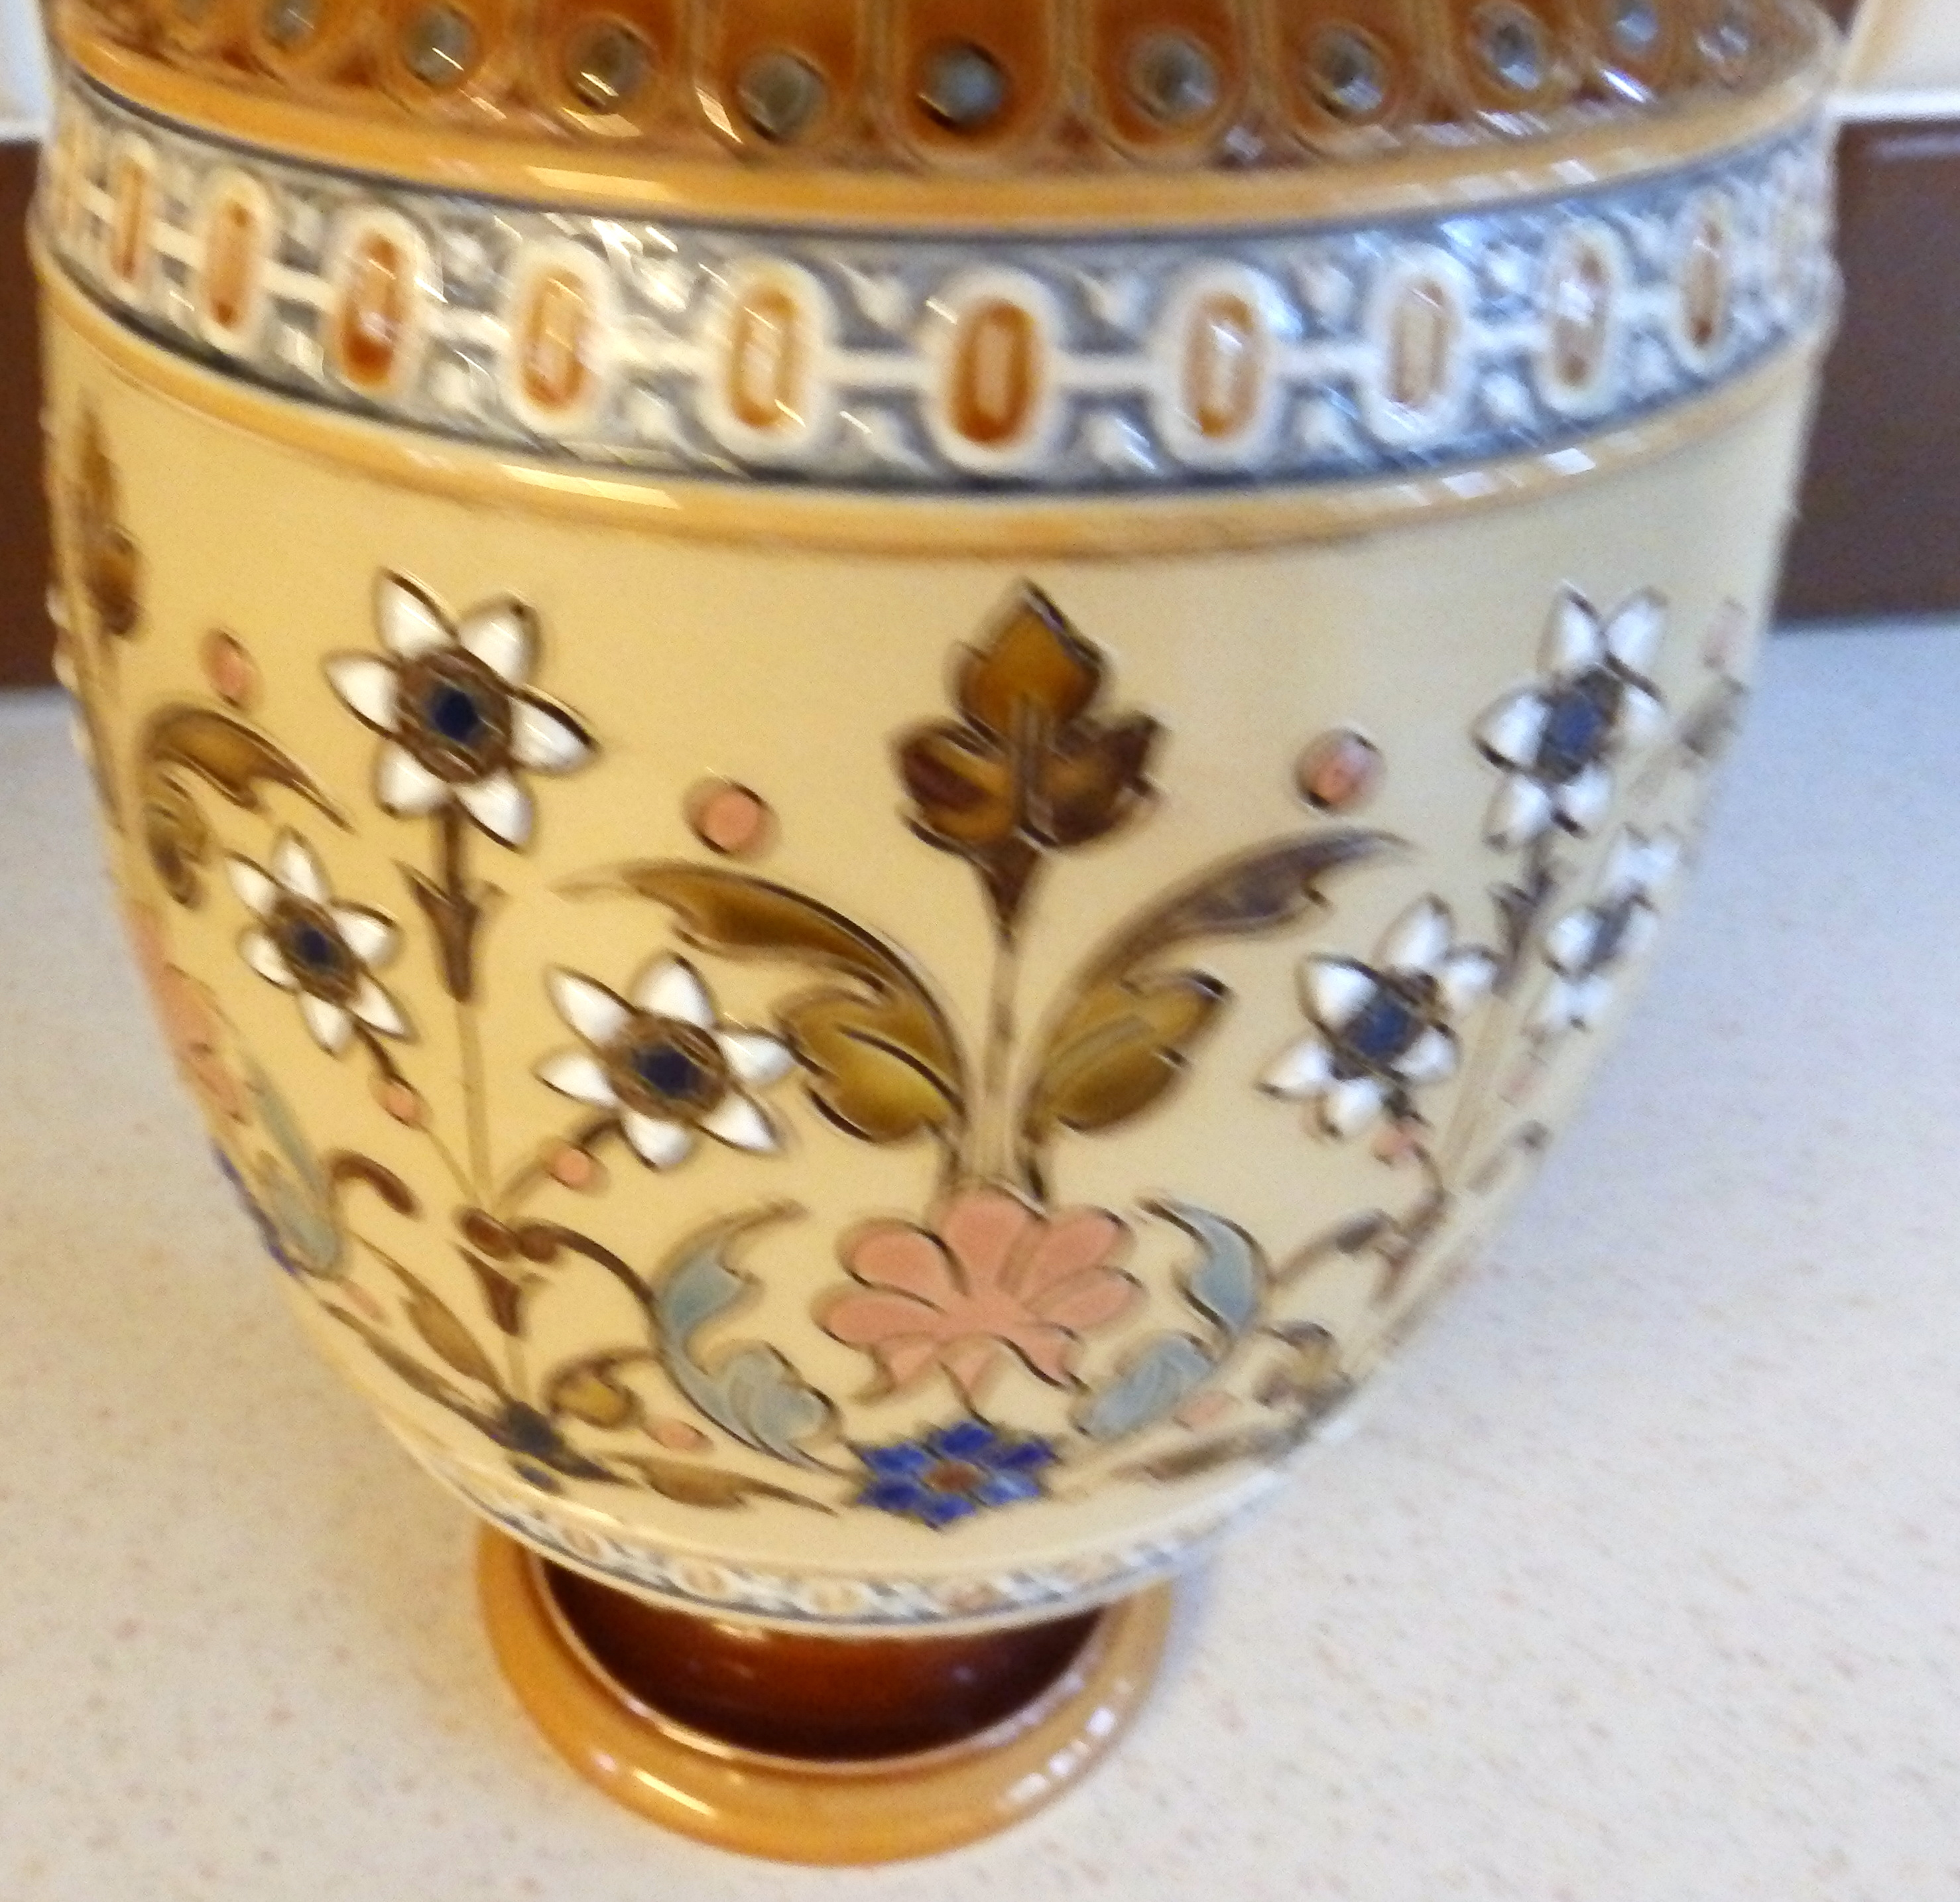 Fine Quality Mettlach German Stoneware Vase With Date Mark For 1884 For Sale Antiques Com